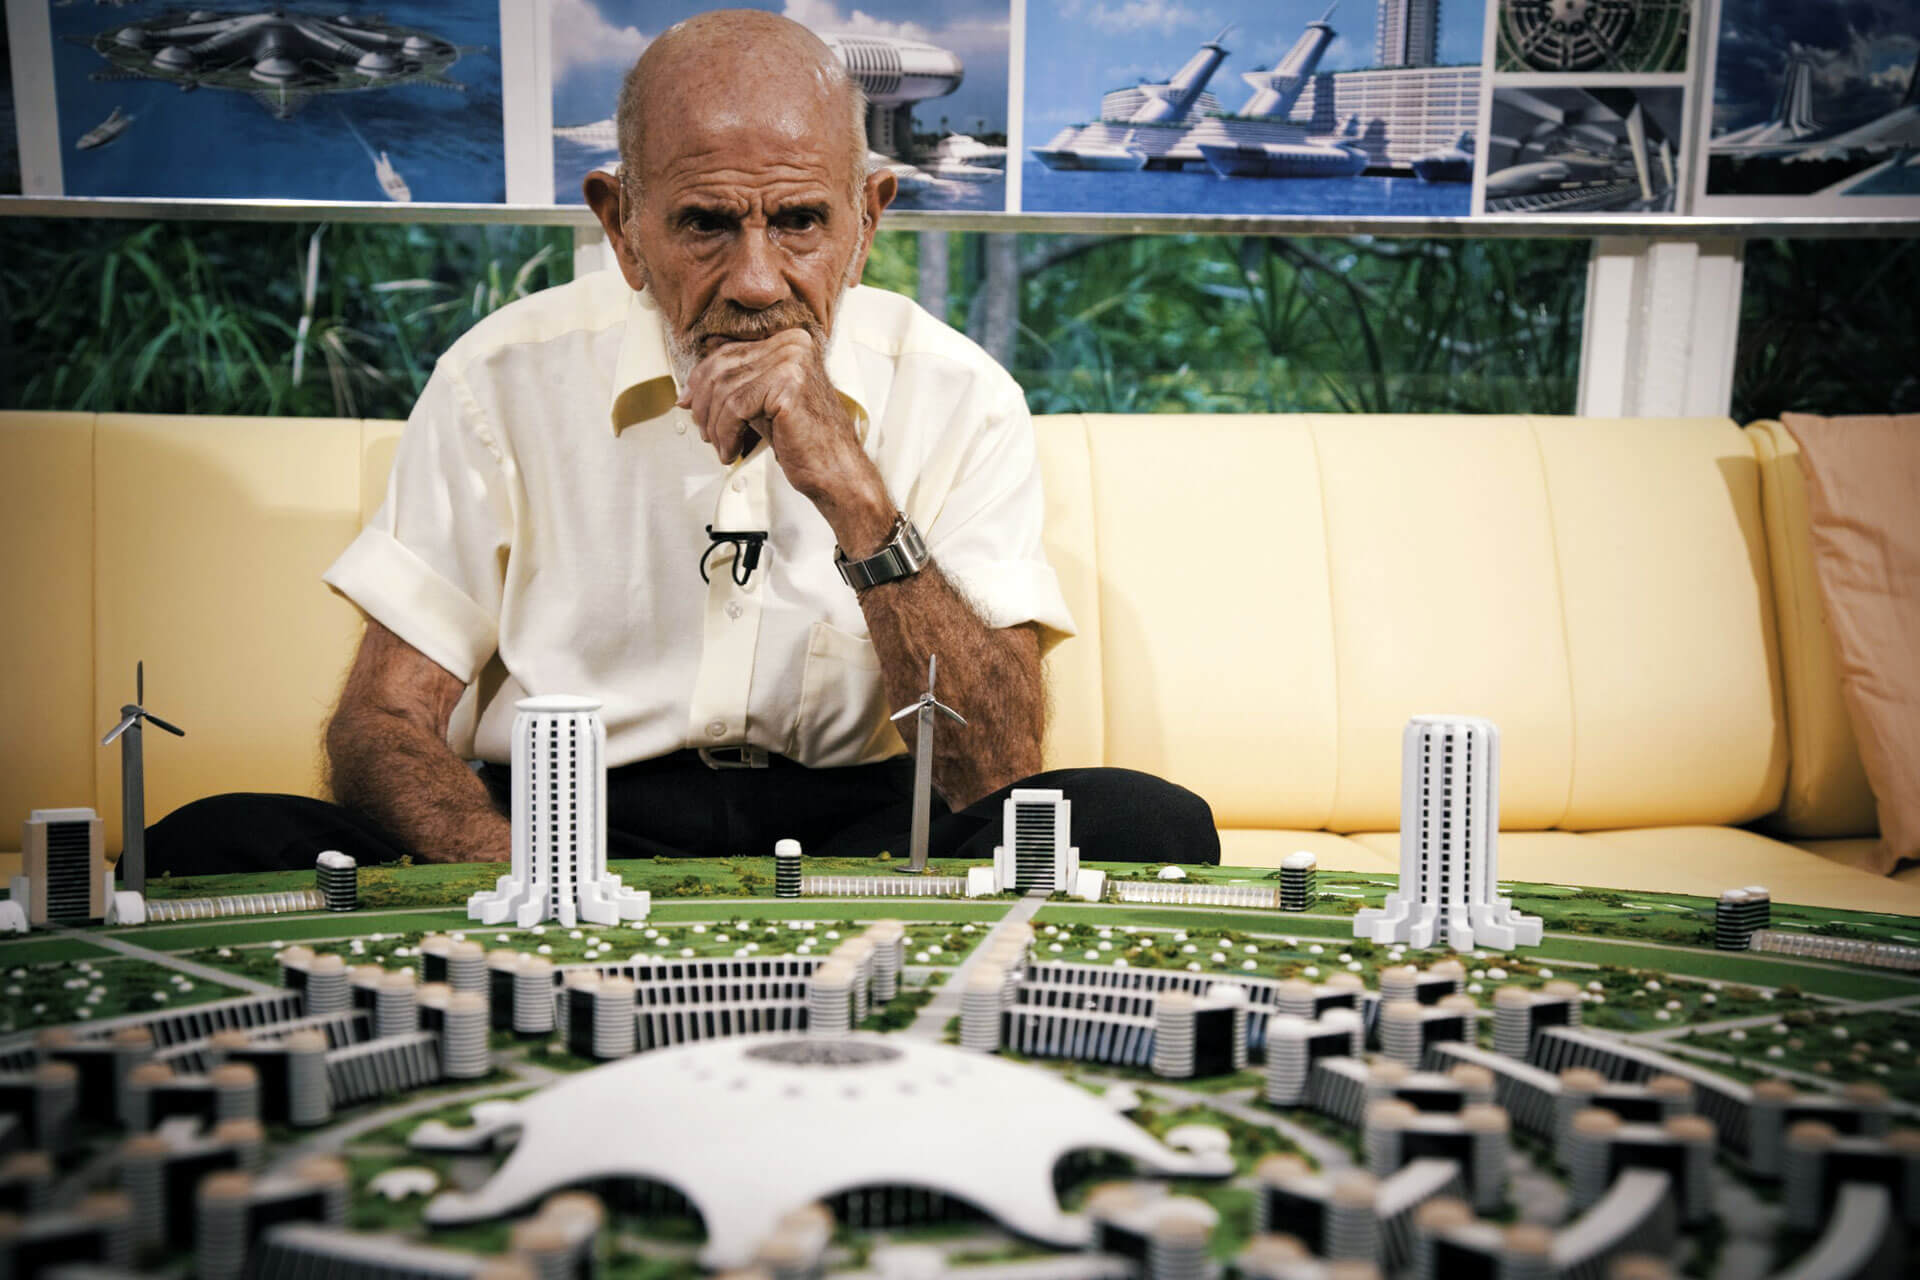 Top 5 Jacque Fresco Lectures You Must Watch